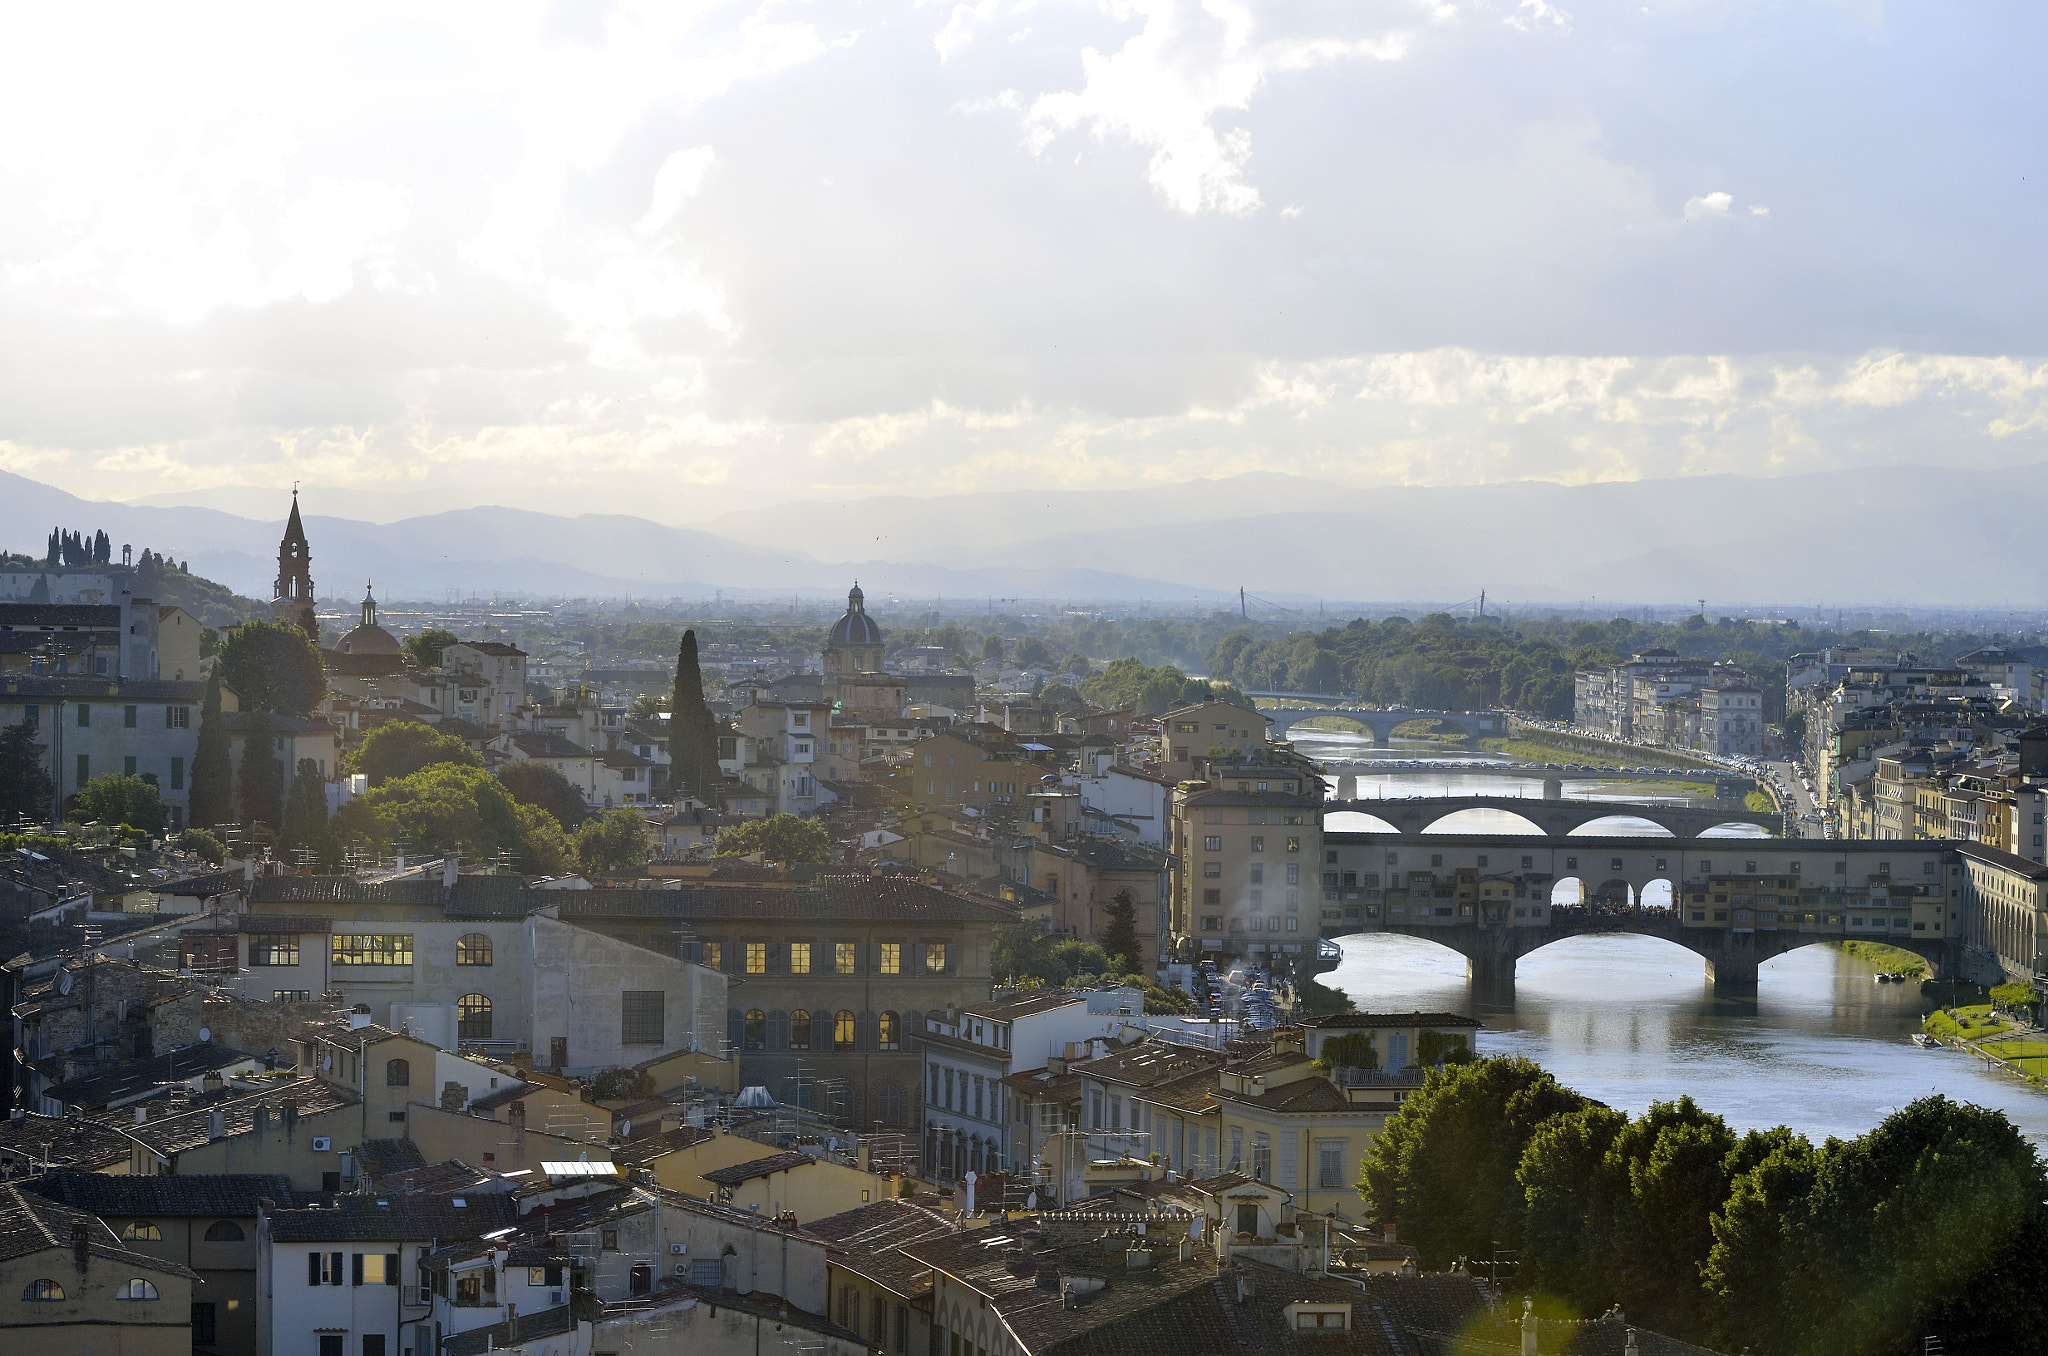 Photograph view of Florence by derevnja on 500px